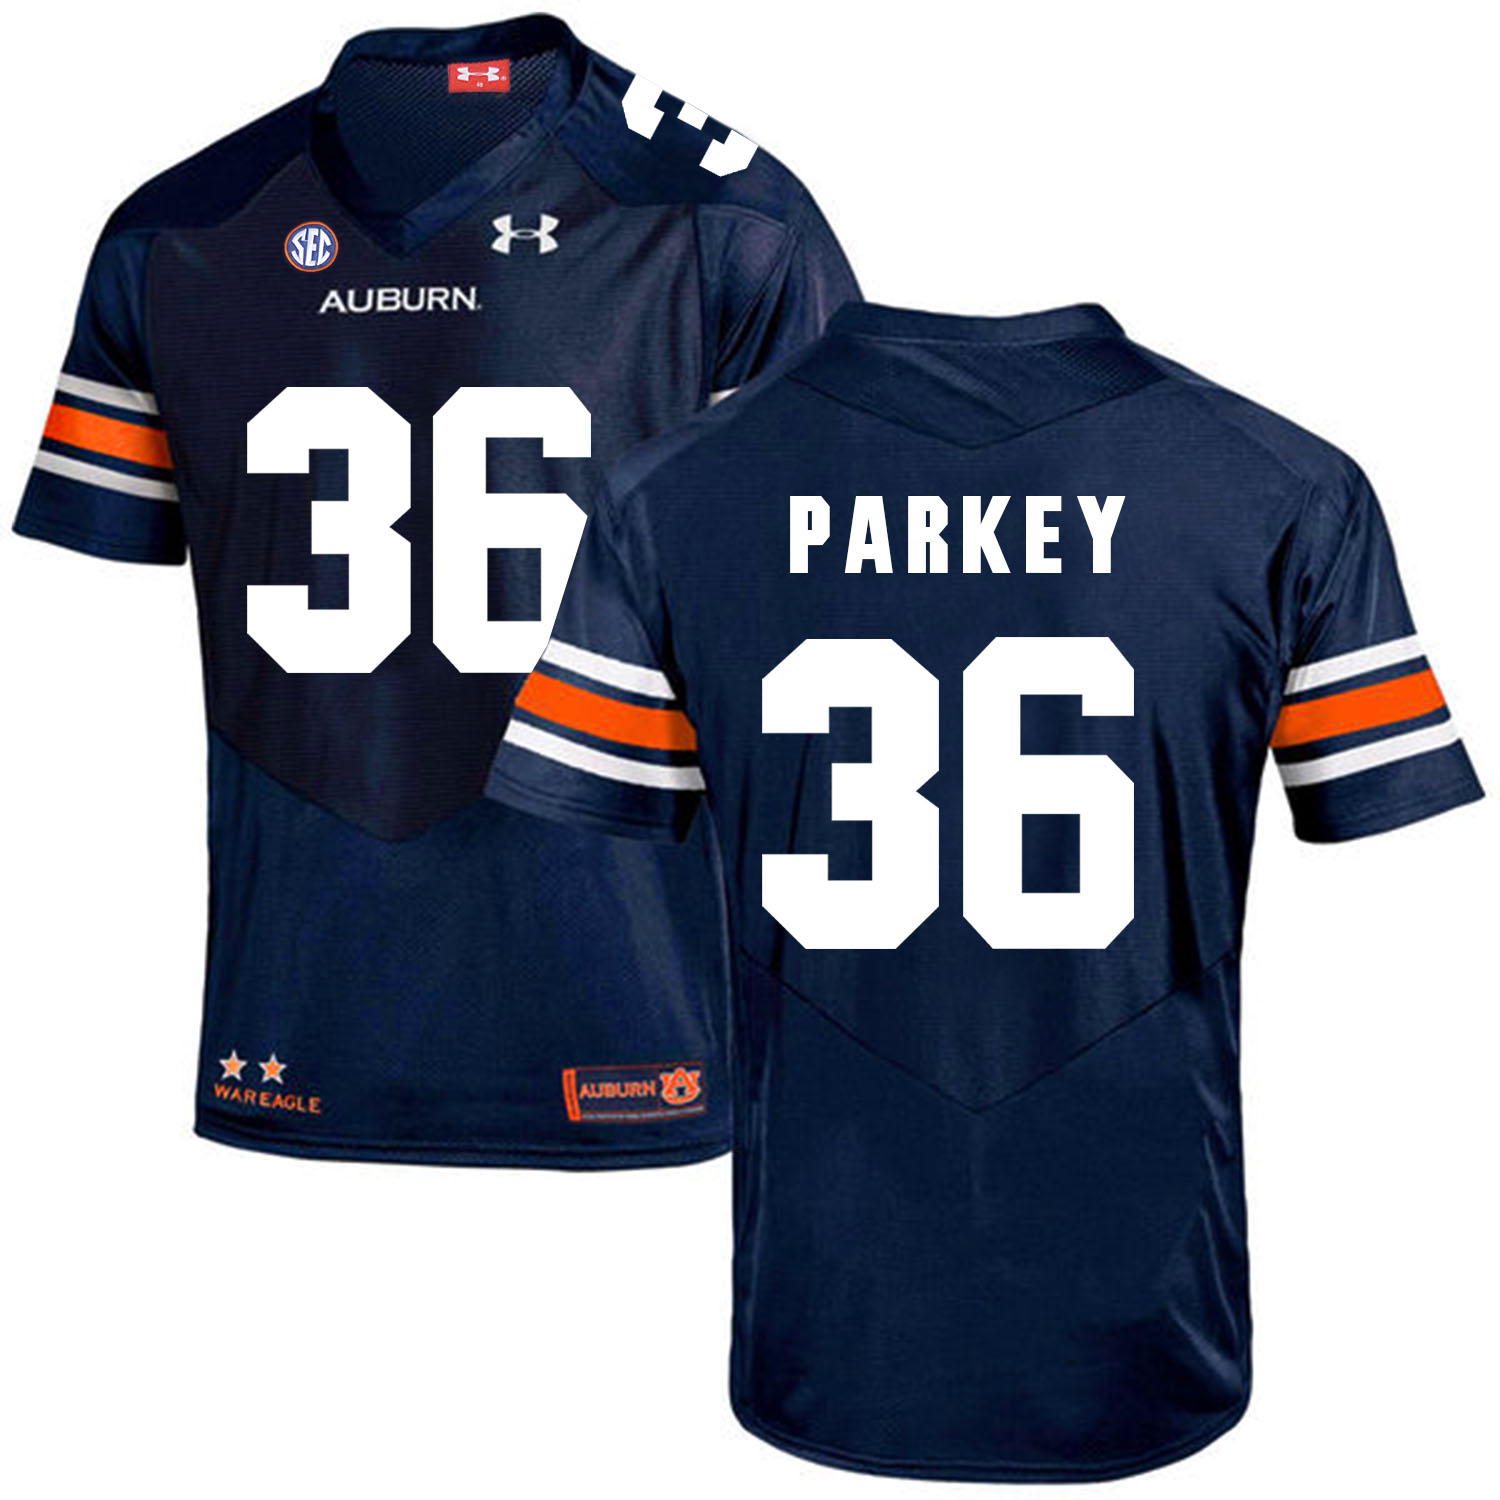 Auburn Tigers 36 Cody Parkey Navy College Football Jersey